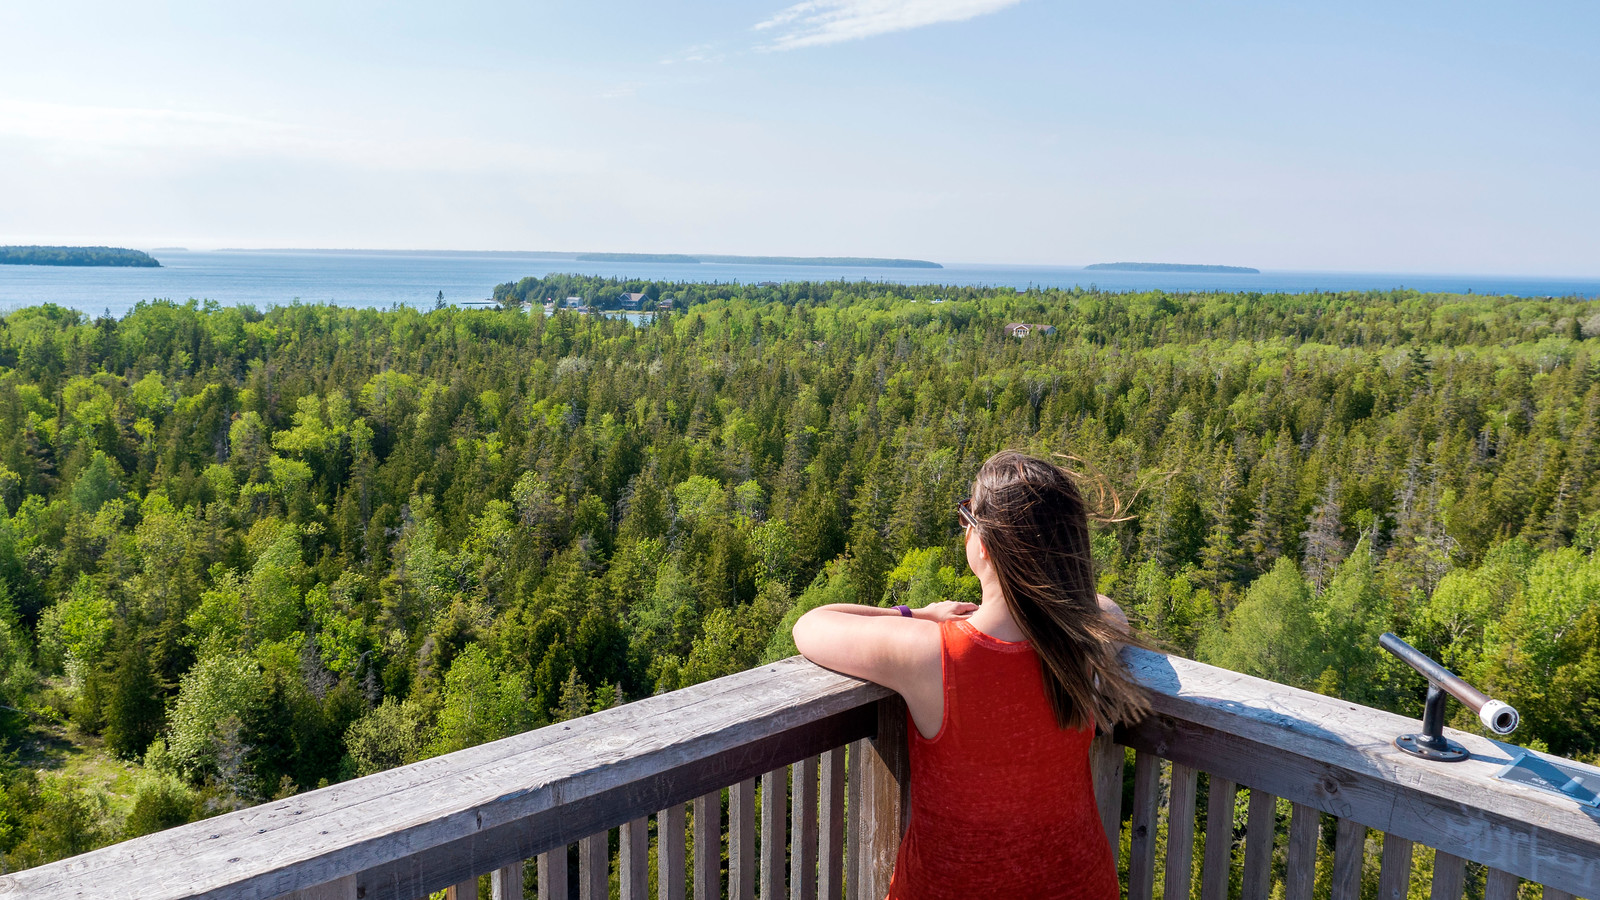 Lookout Tower at Fathom Five National Marine Park. Best Bruce Peninsula Hiking Trails for Nature Lovers.